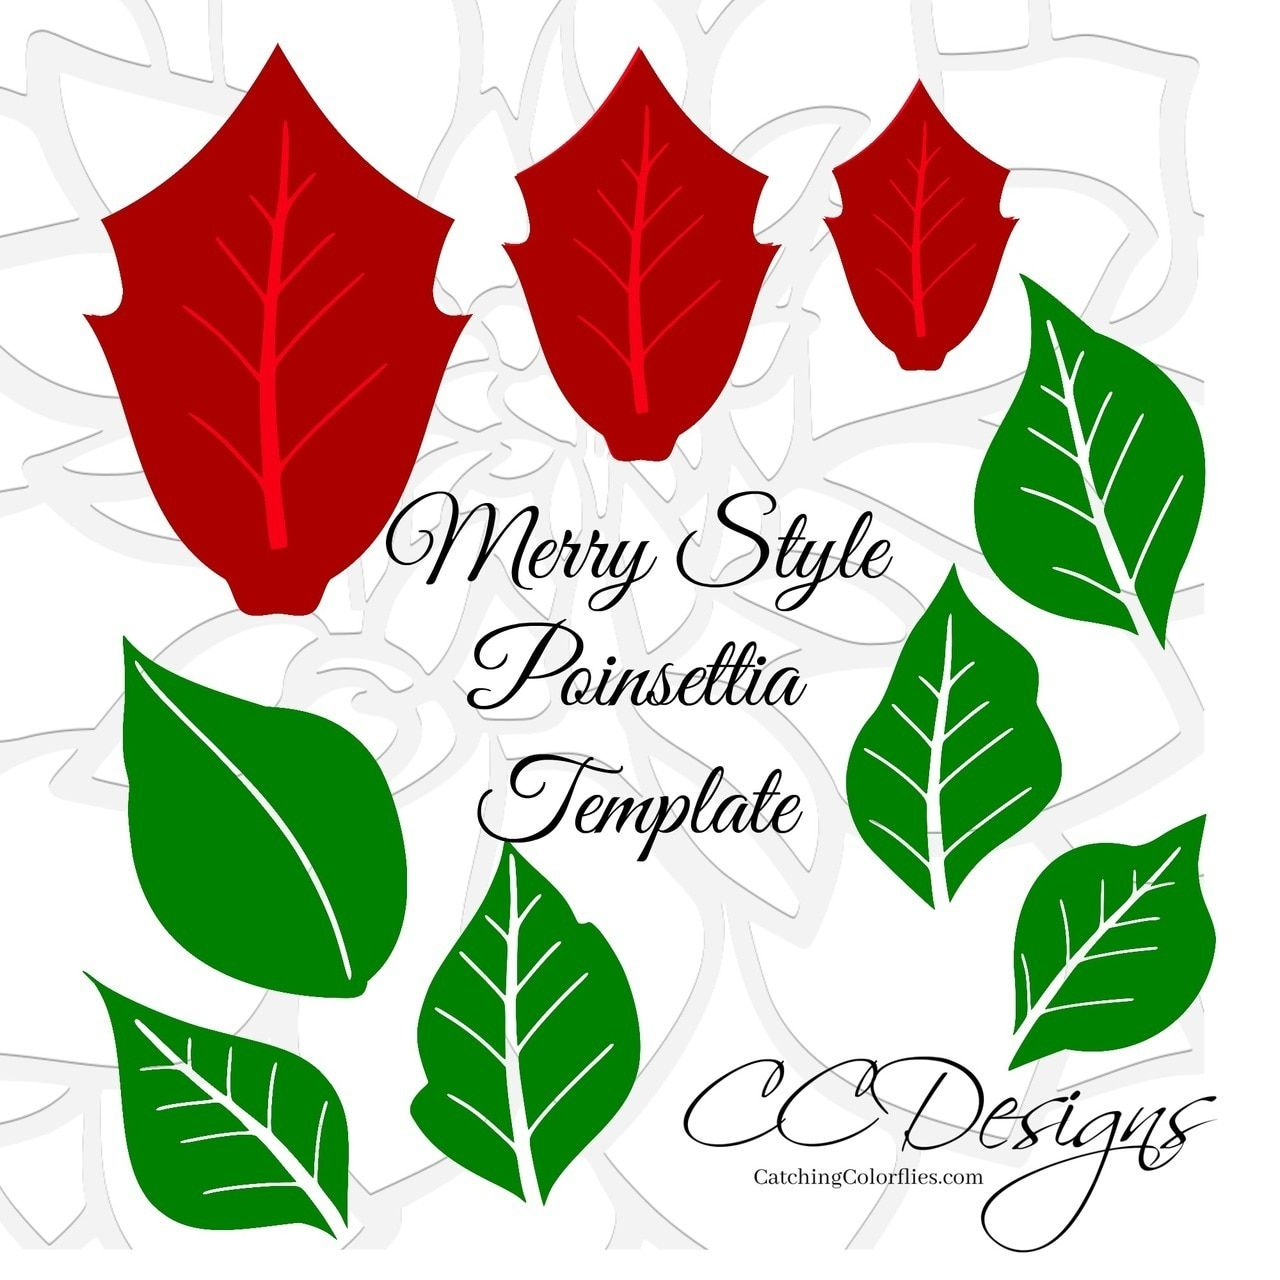 Merry Poinsettia Christmas Flower Template Paper flowers